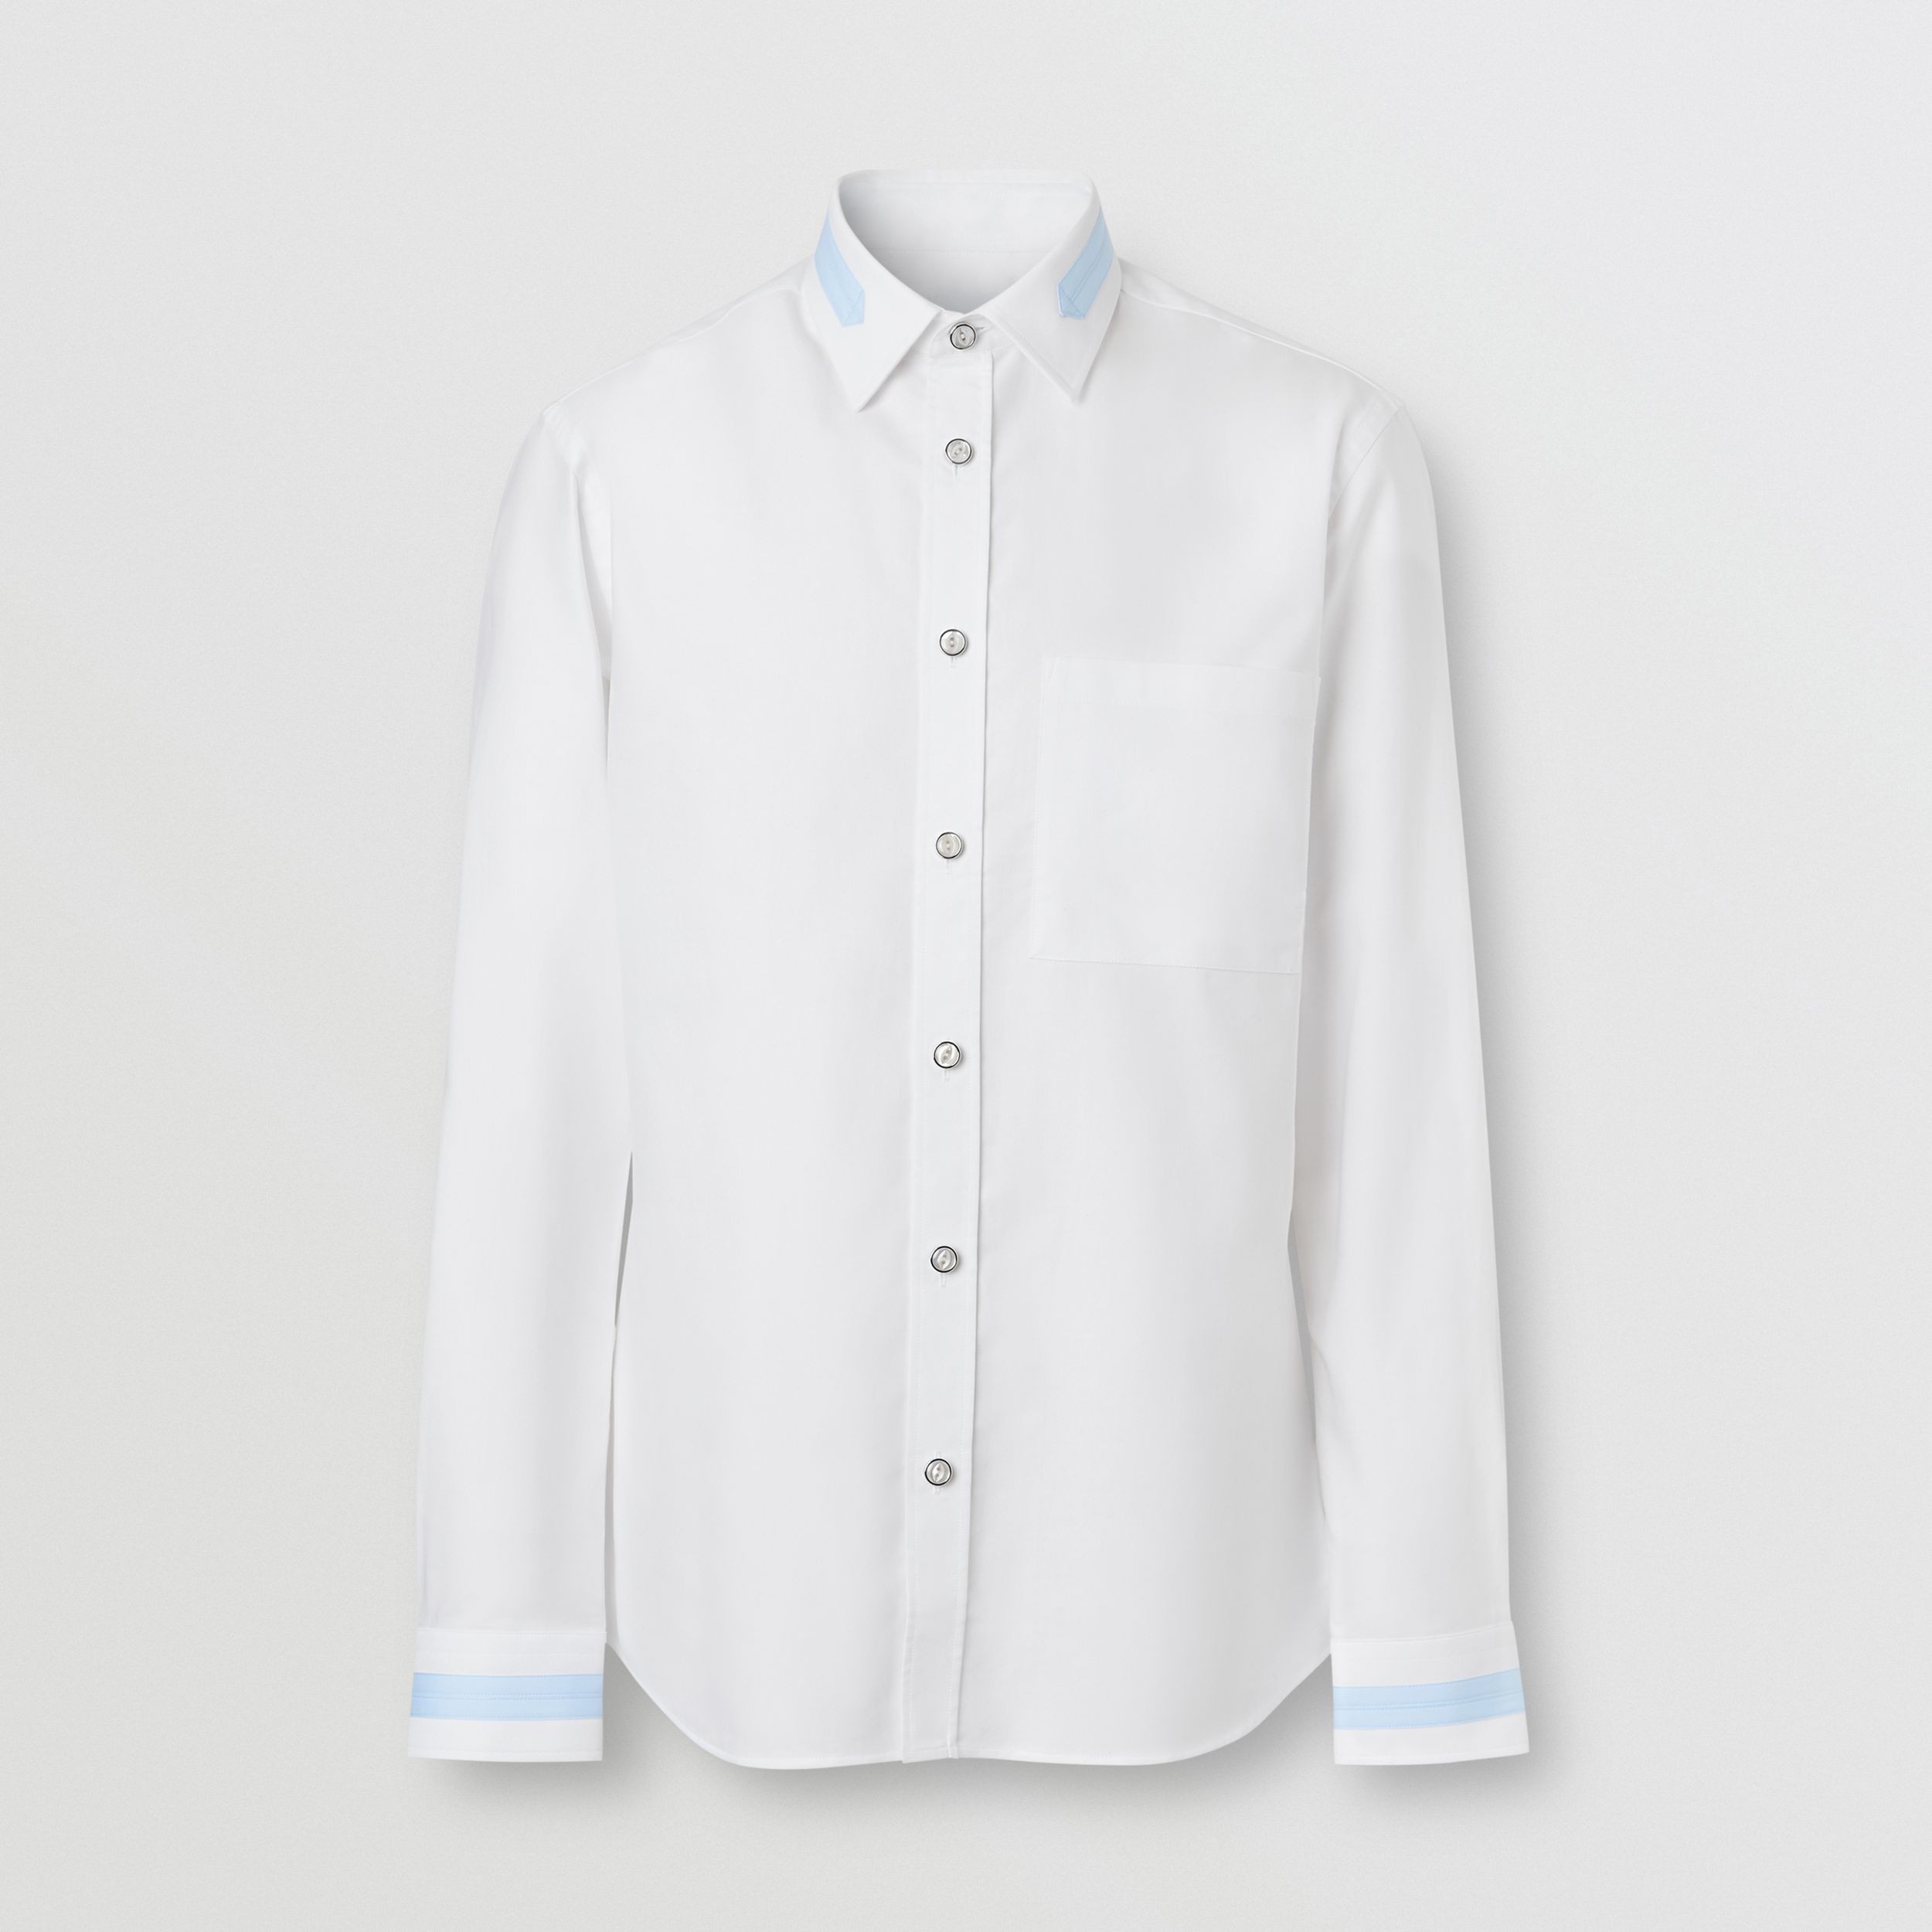 Slim Fit Cotton Oxford Shirt in White - Men | Burberry - 4